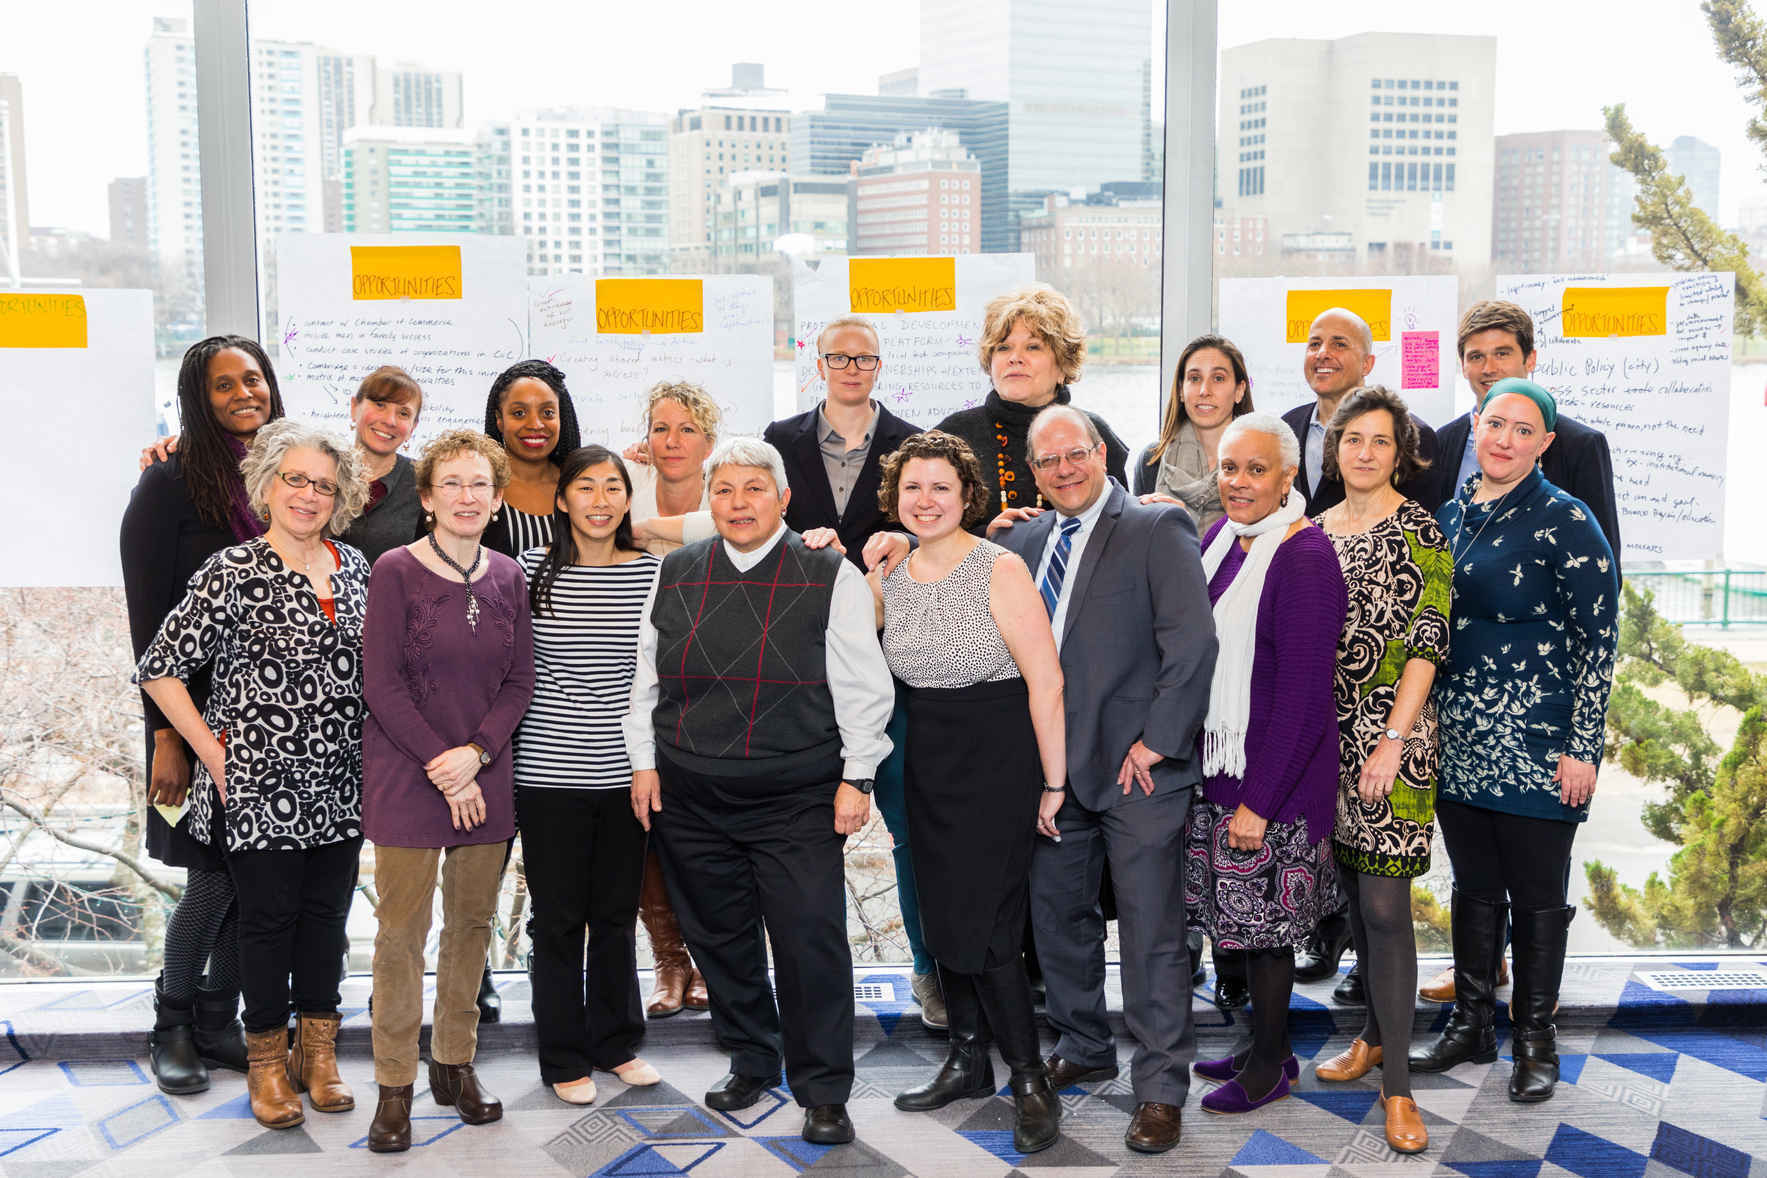 Help us advance equity and justice in the community by strengthening the Cambridge nonprofit sector. image